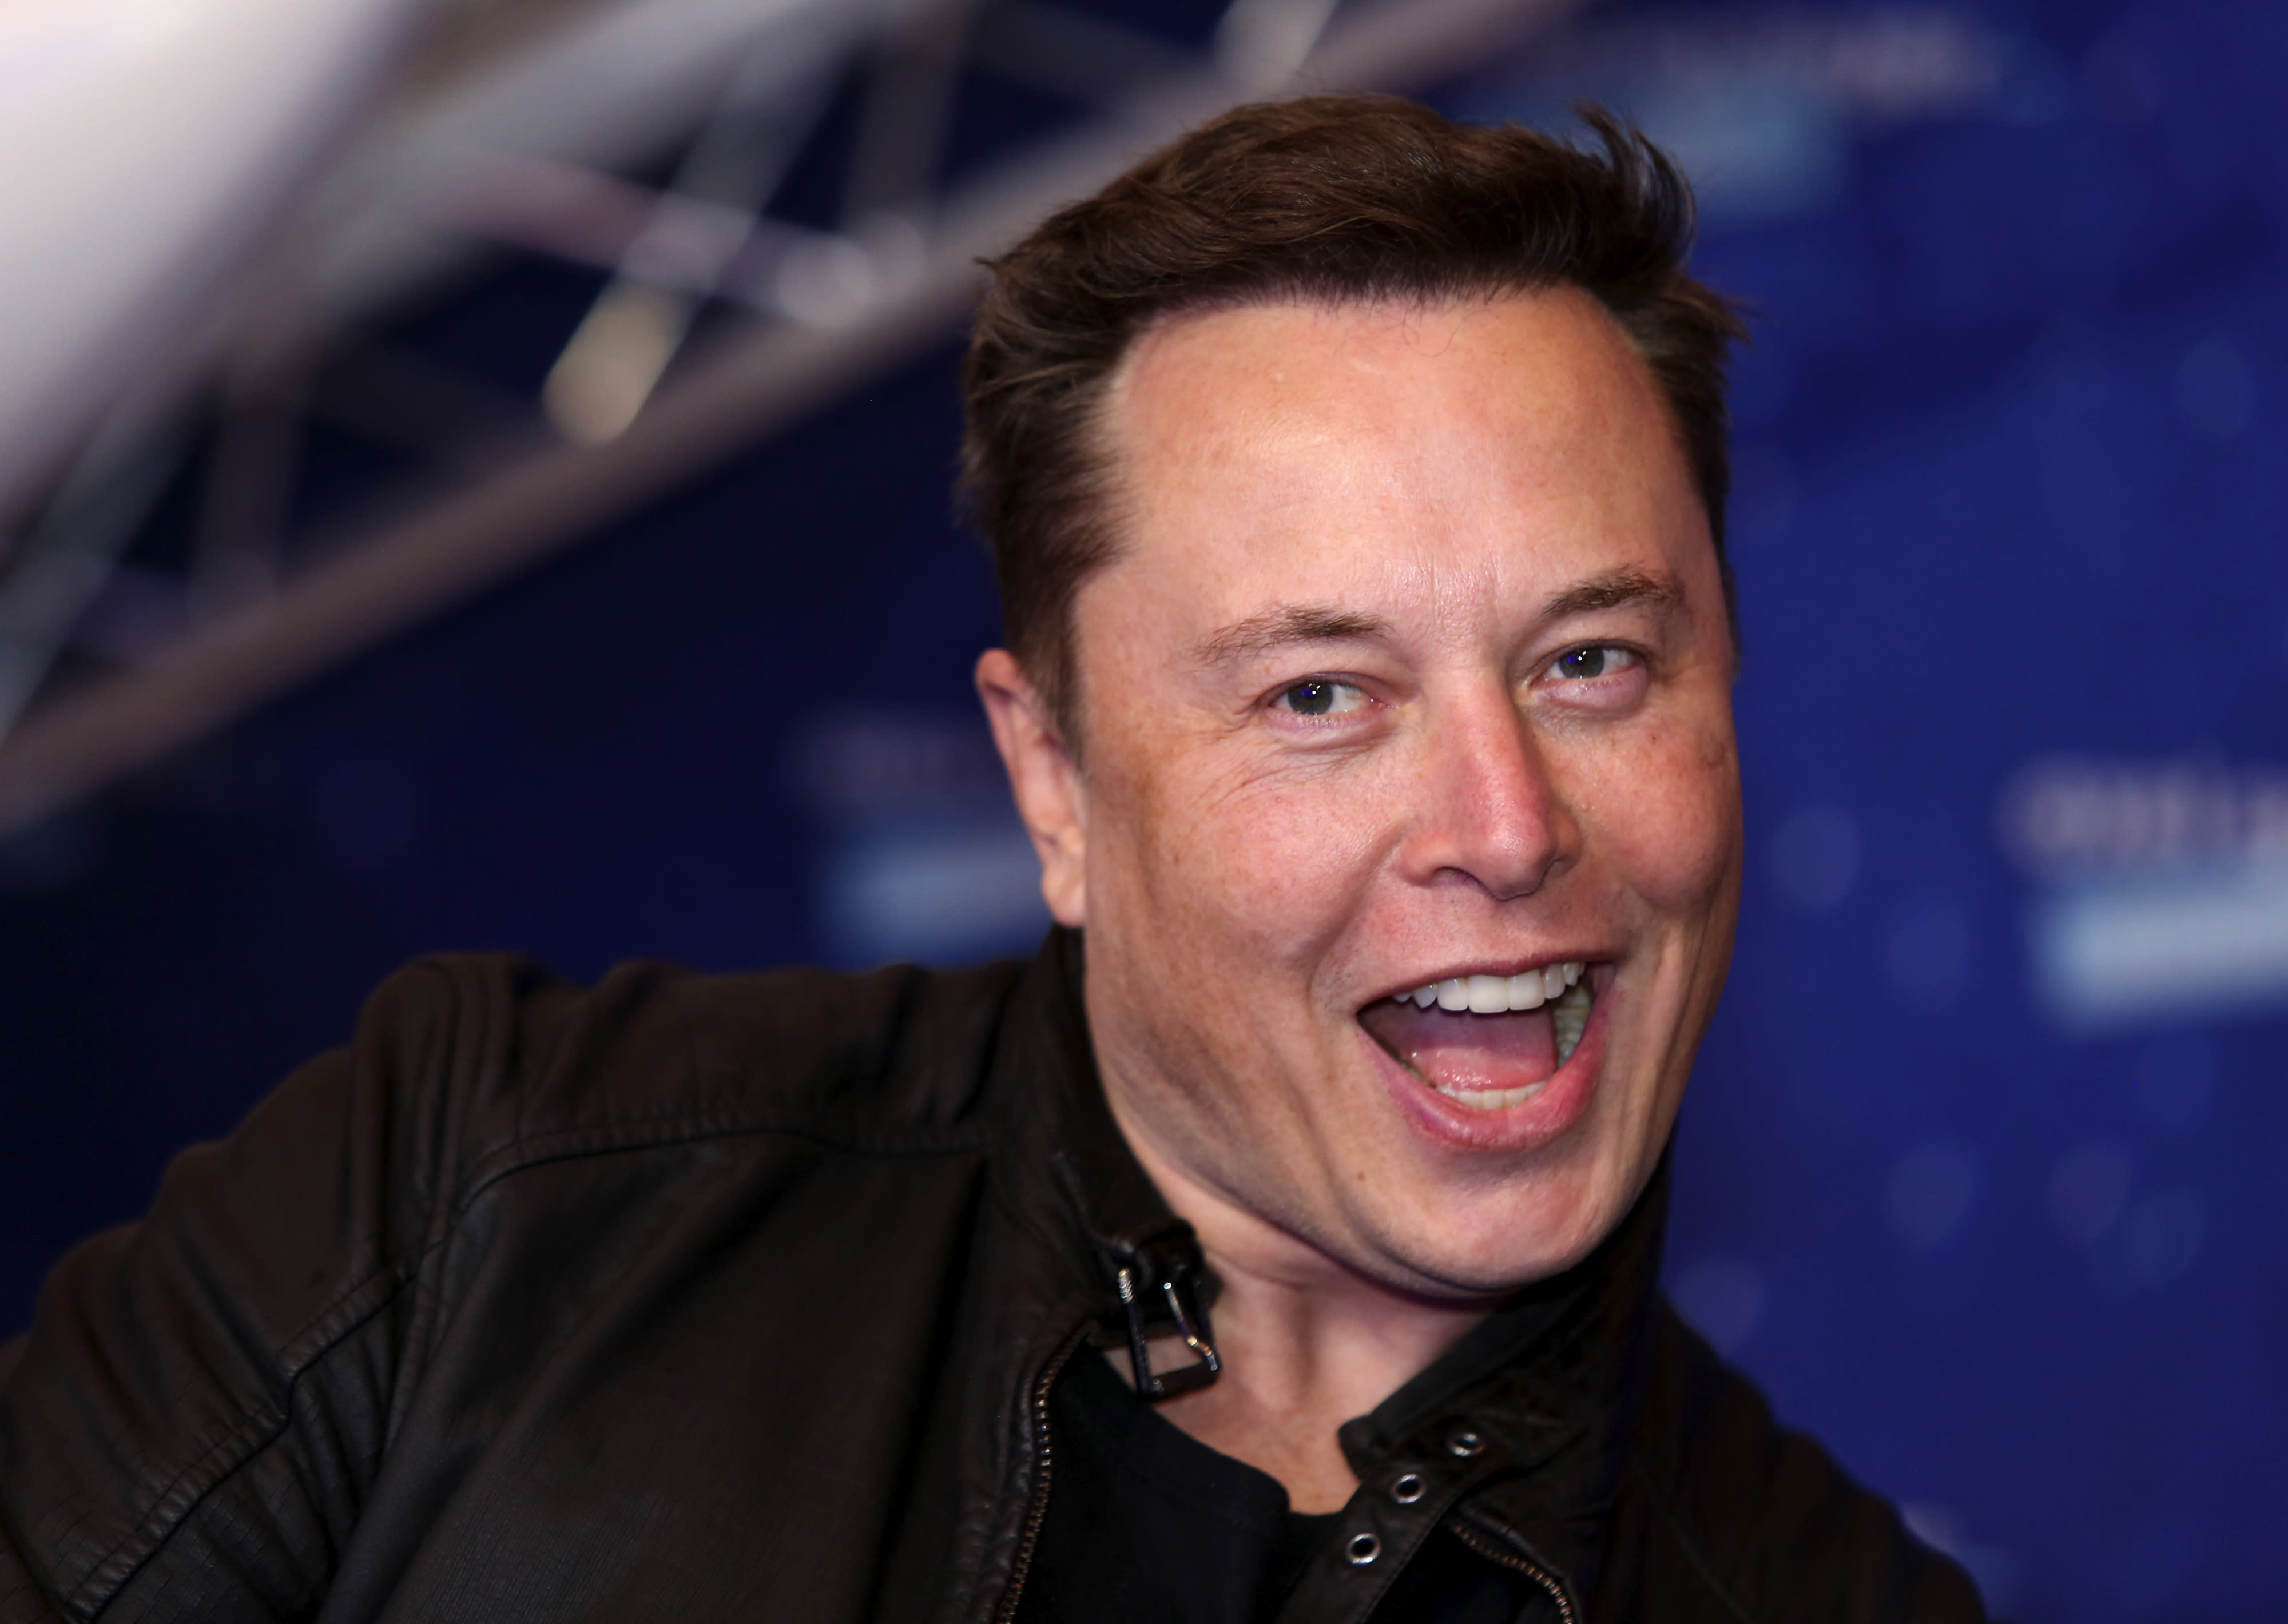 Elon Musk to host 'Saturday Night Live' on May 8